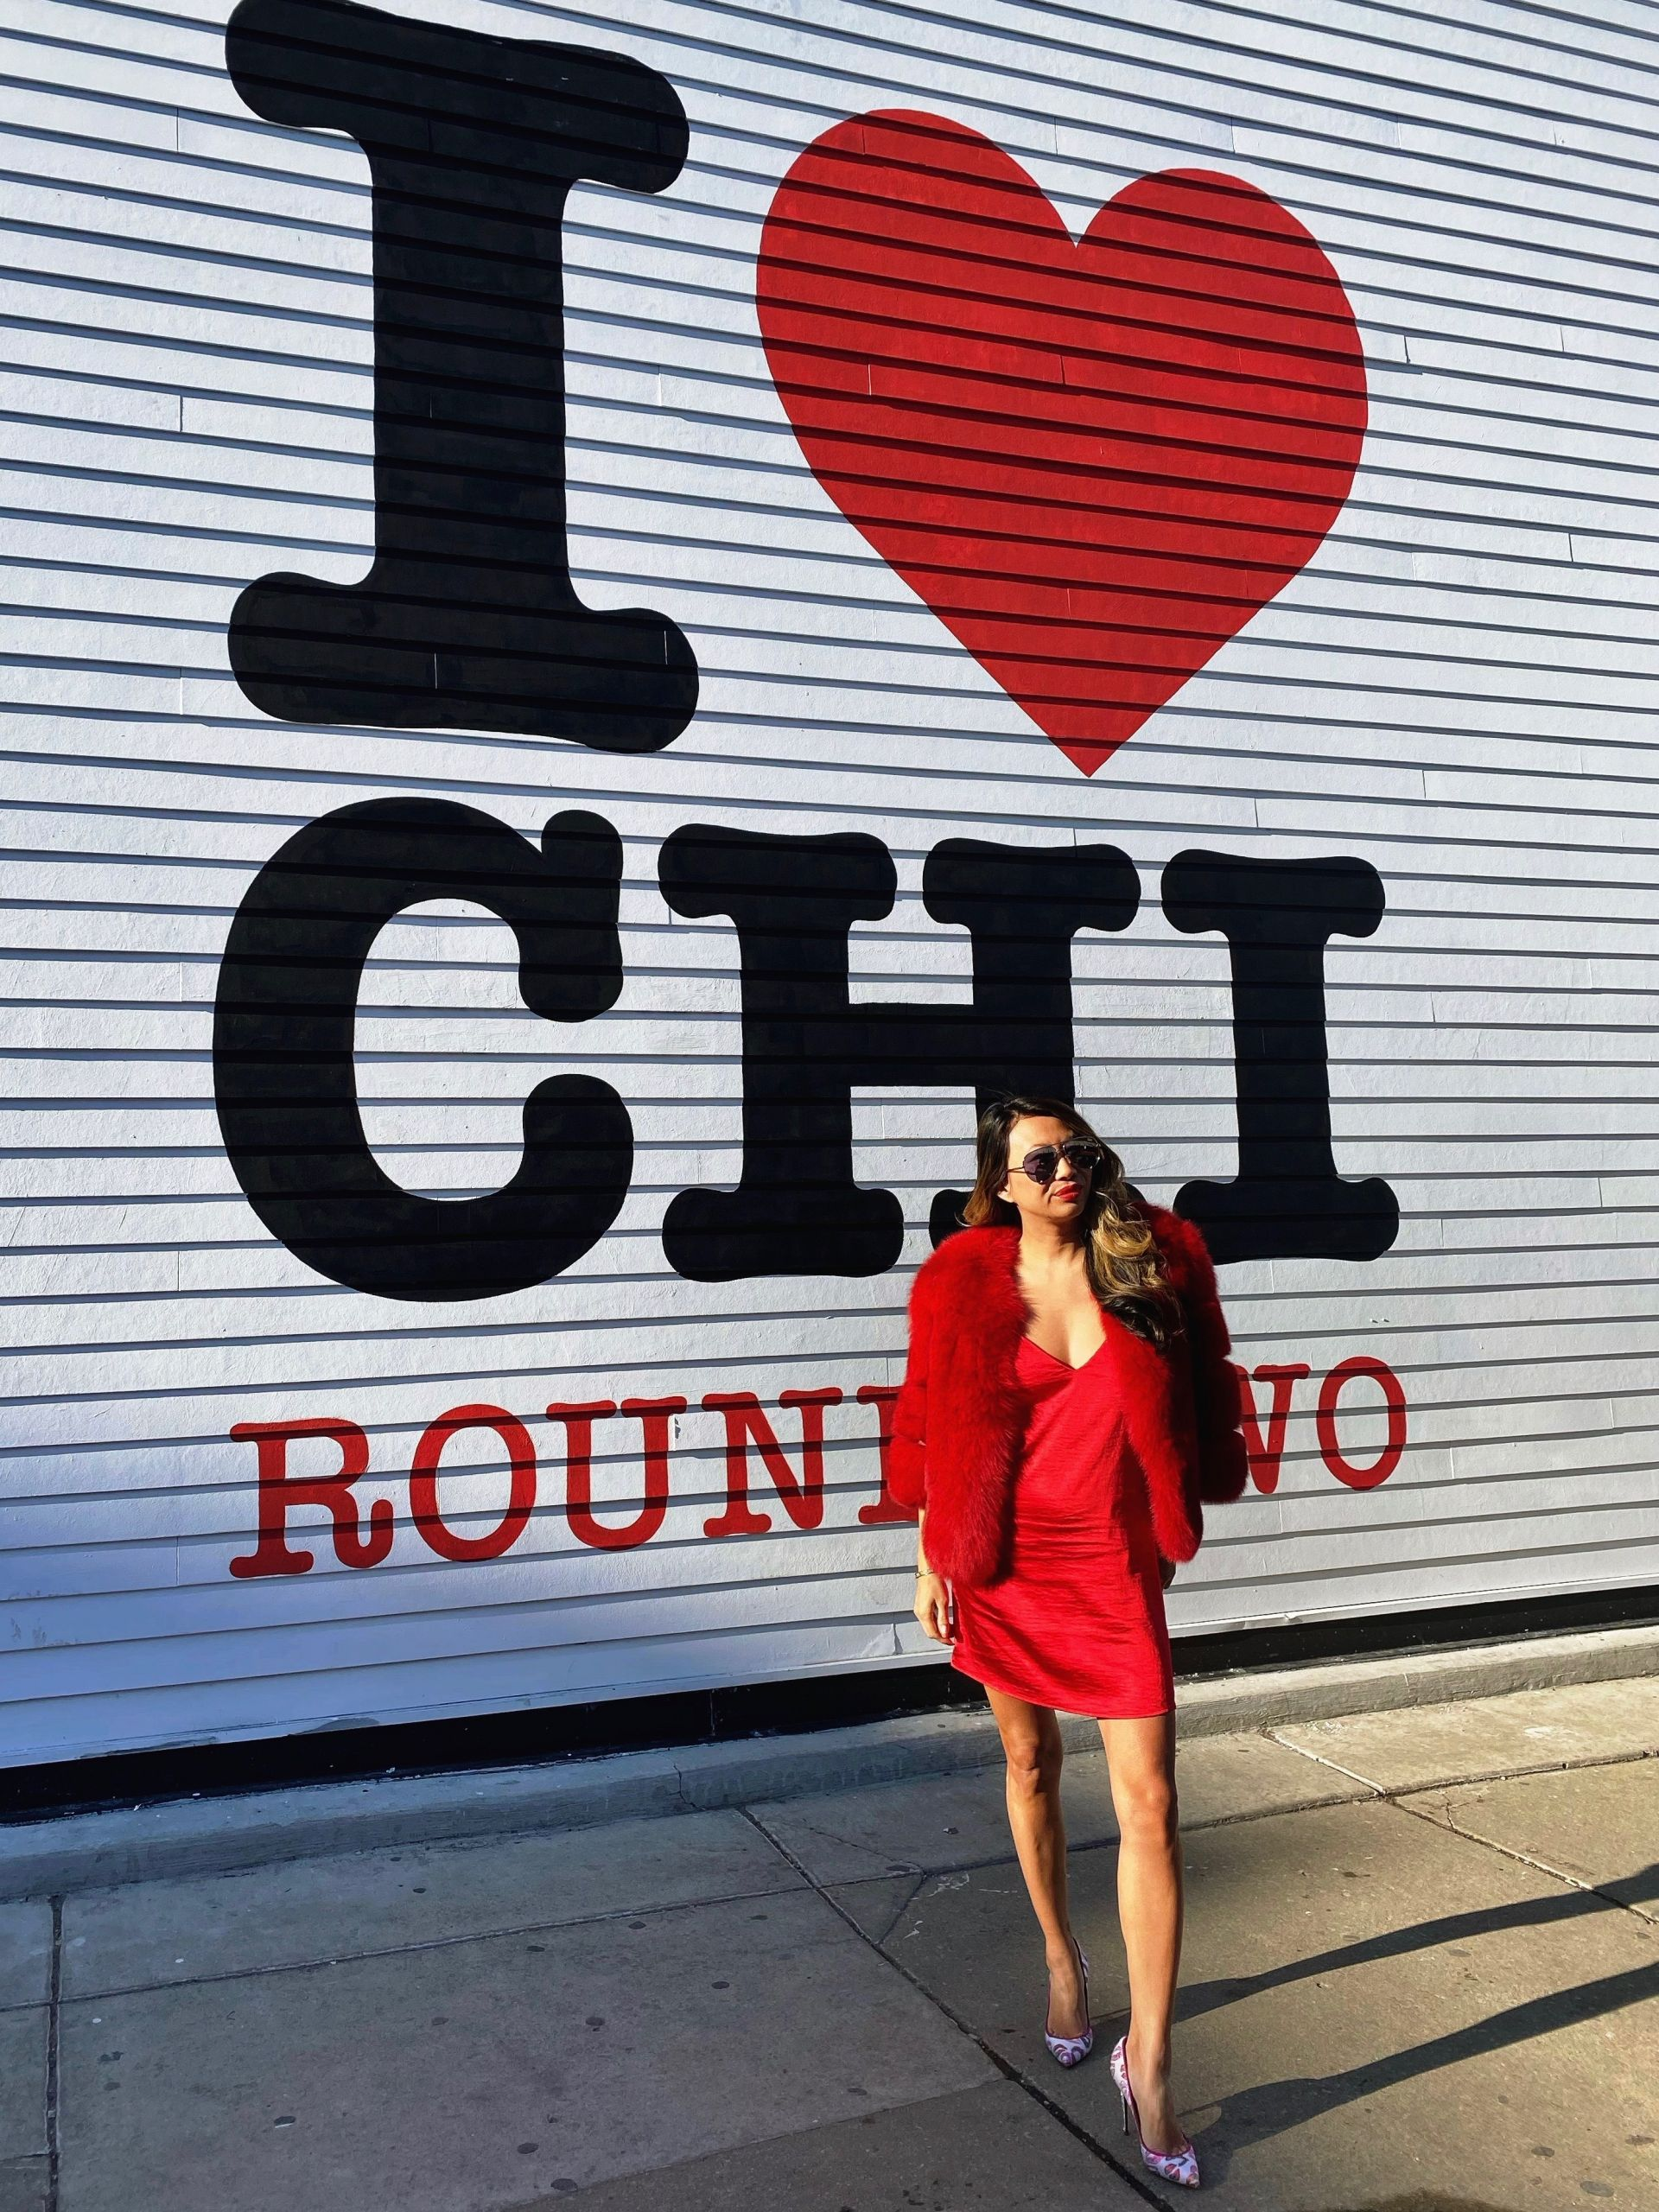 Top 10 Best Instagrammable Walls in Chicago, wall art in chicago, street art in chicago, best wall murals in chicago, photography in chicago, instagram chicago, best places to take photos in chicago, photoshoots in chicago, wall murals in chicago, wall guide, best wall art in chicago, 2020 murals in chicago, chicago guide, chicago blogger, chicago travel, chicago photography, chicago wall art, chicago murals, I heart chicago wall